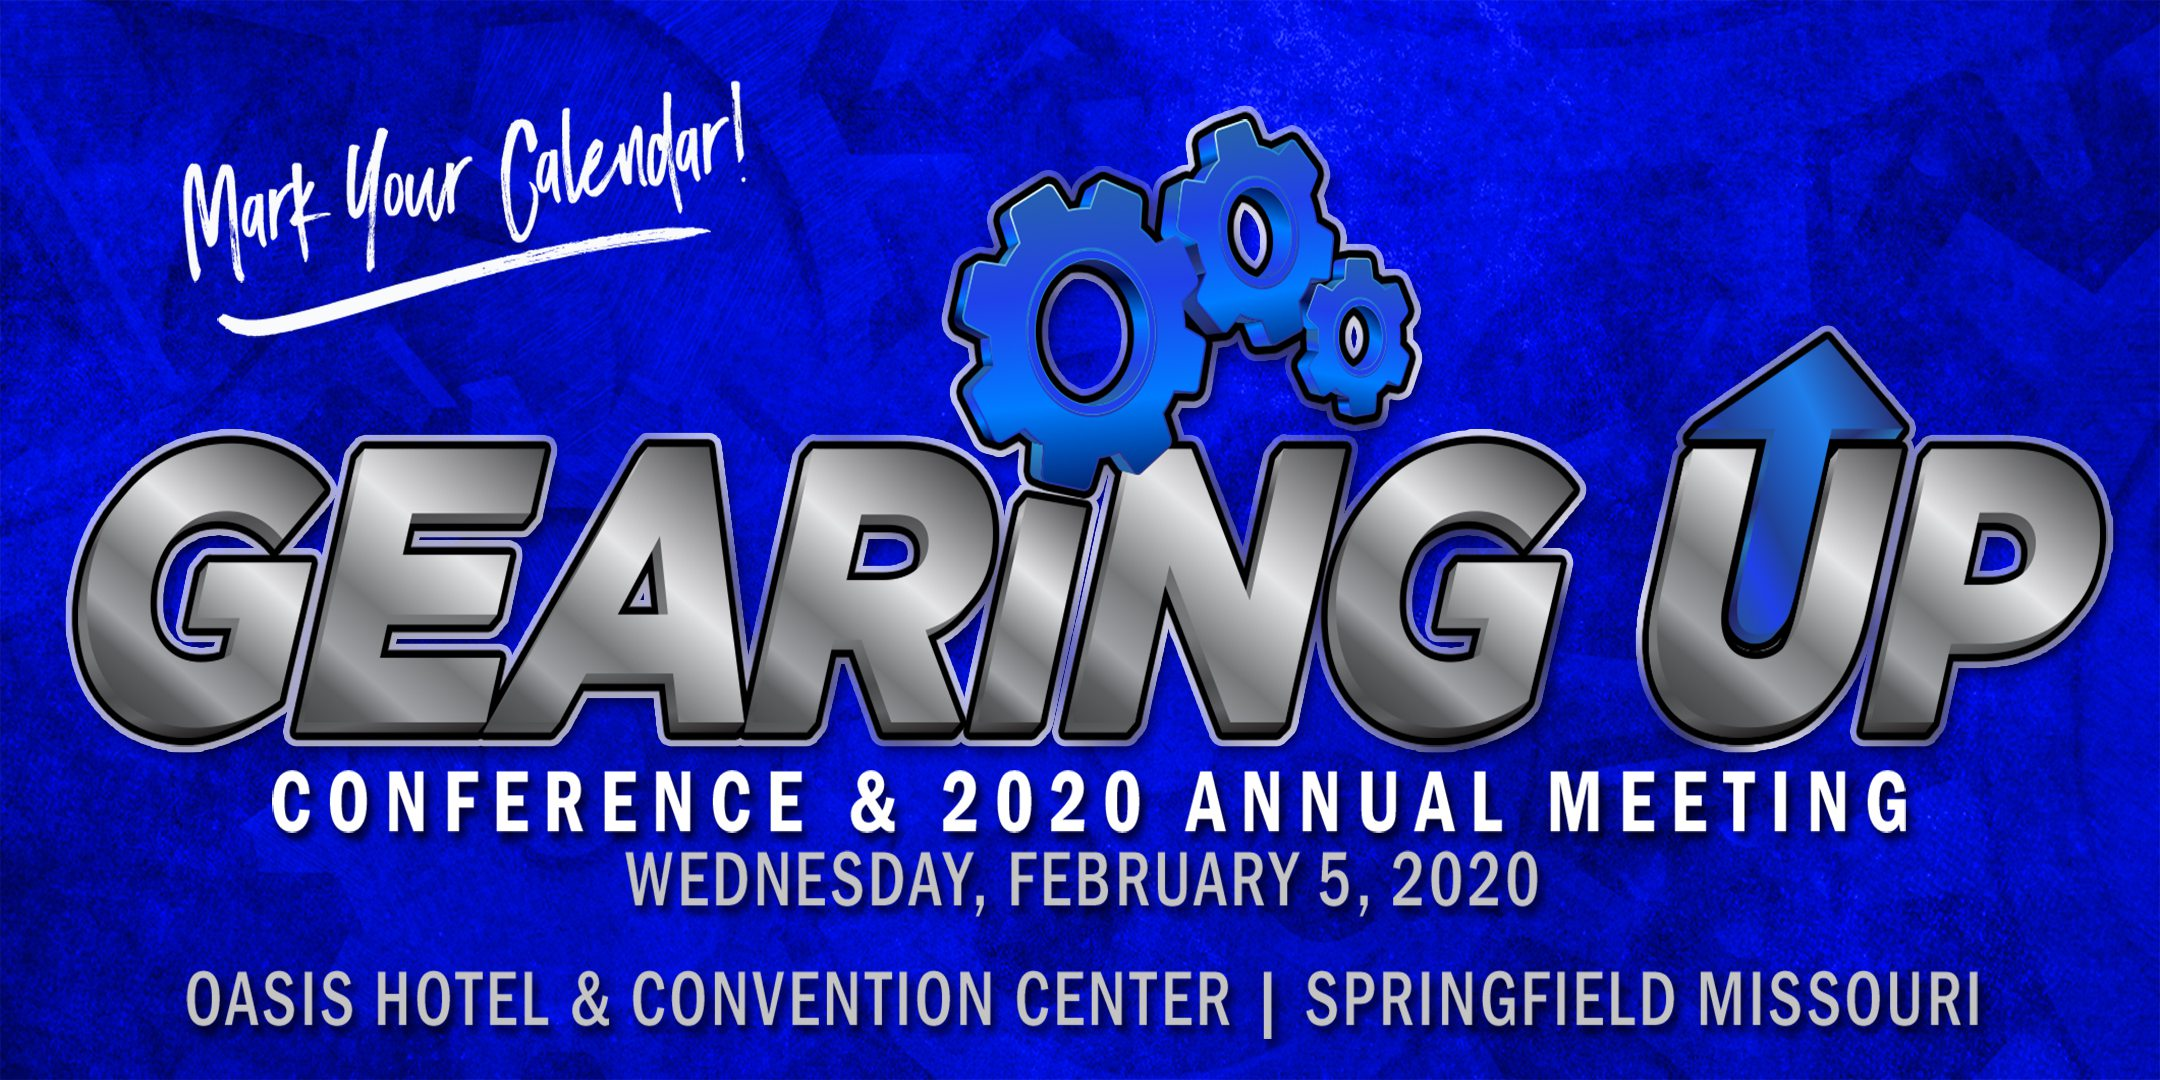 MAM's annual meeting in Springfield, MO